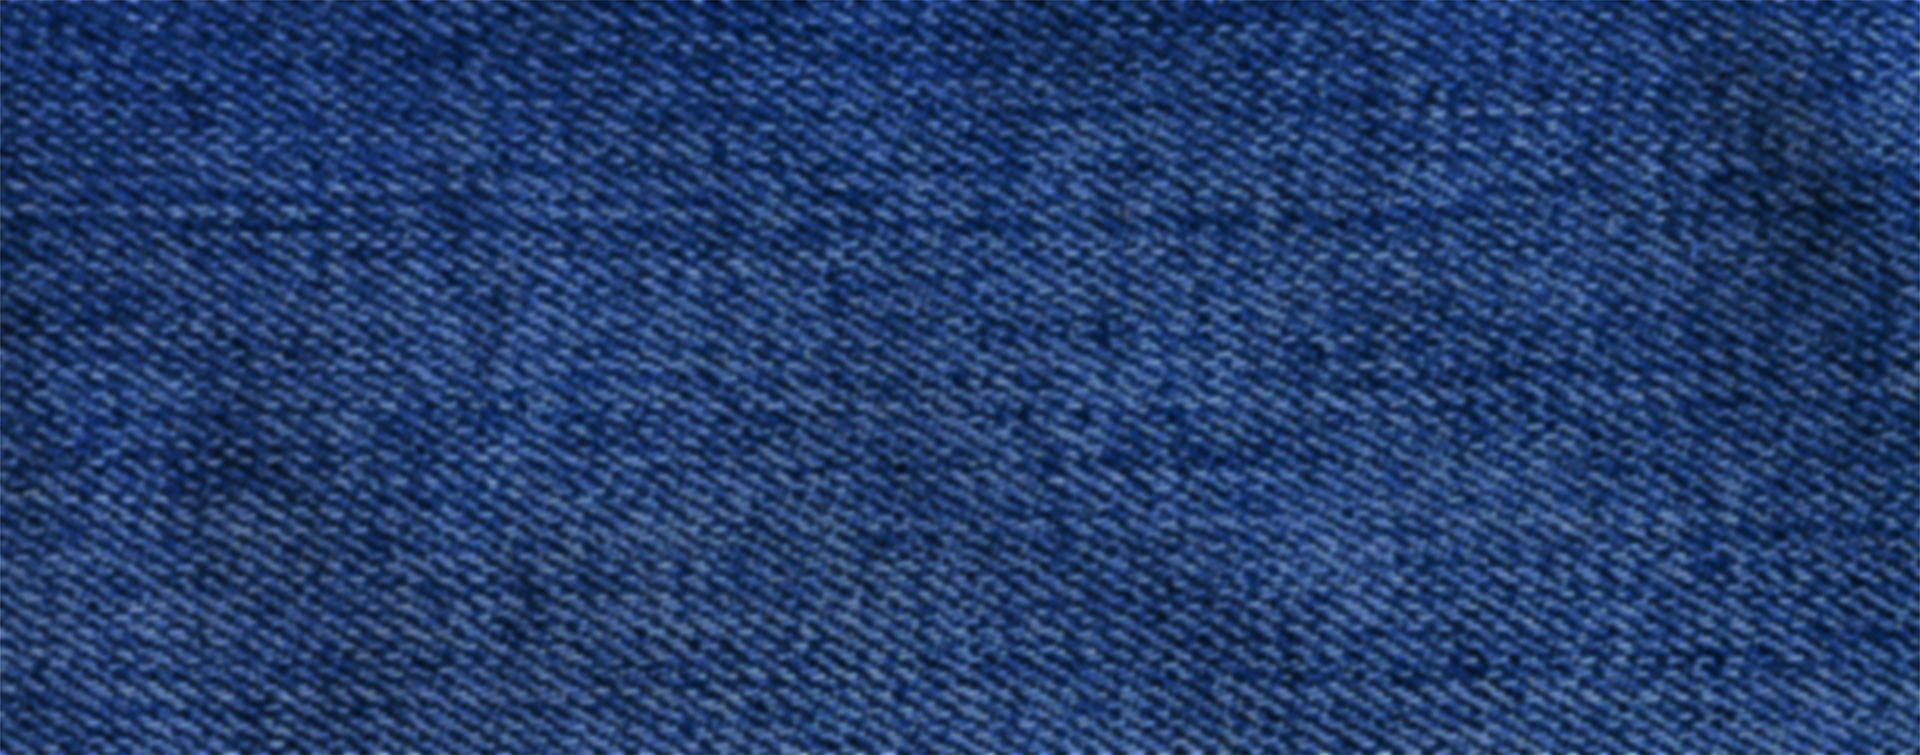 denim22-fabric-close-up-PH7JVT4.jpg